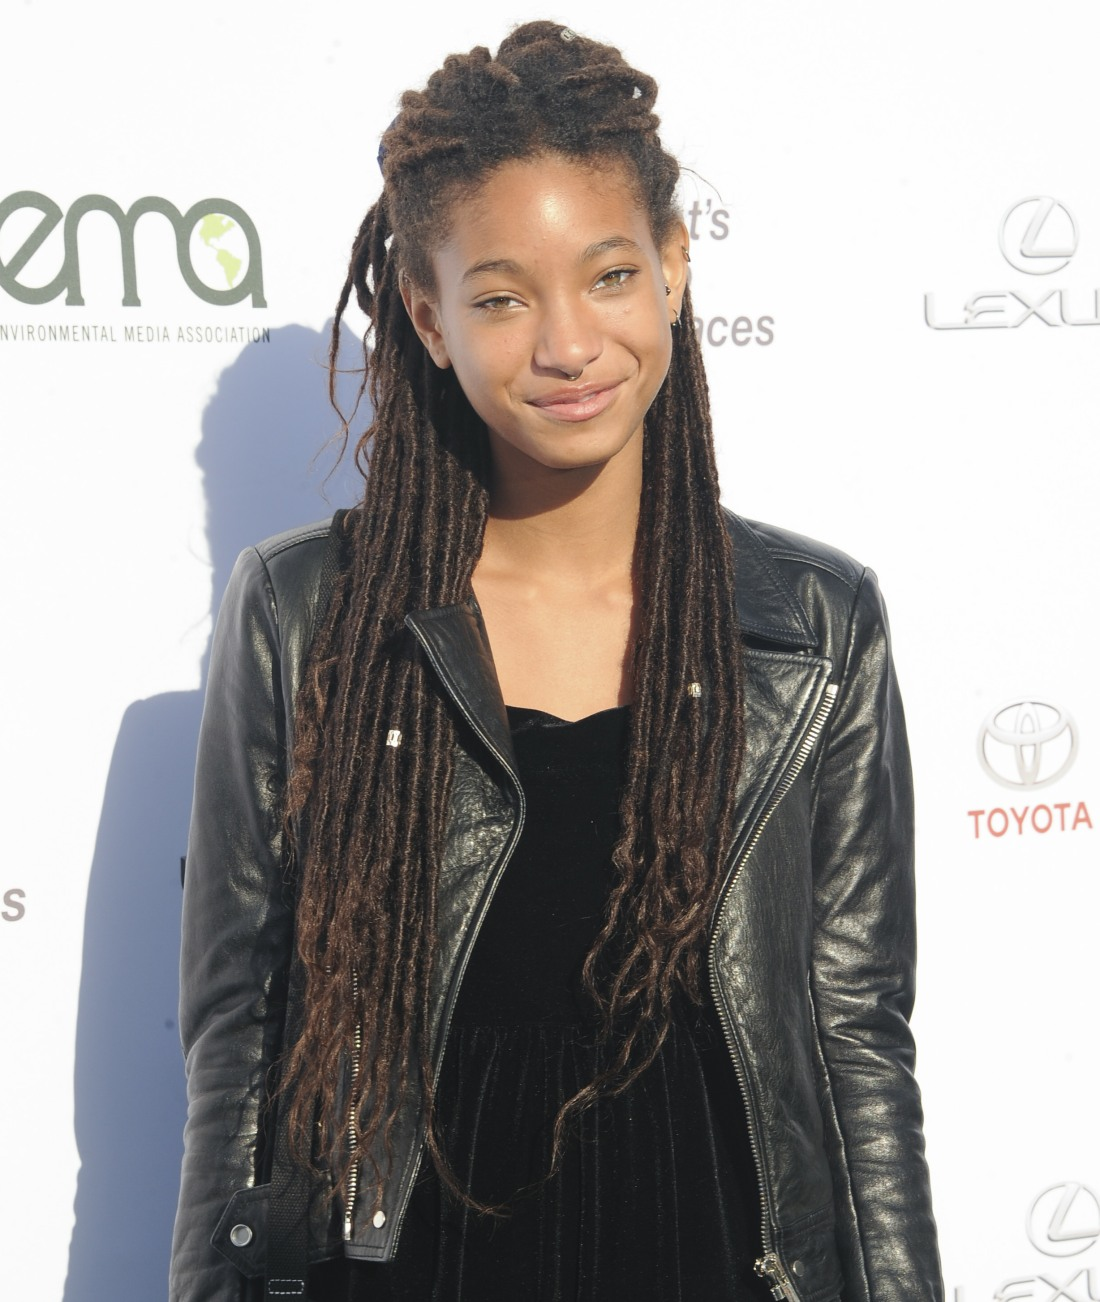 The 27th Annual EMA Awards - Arrivals